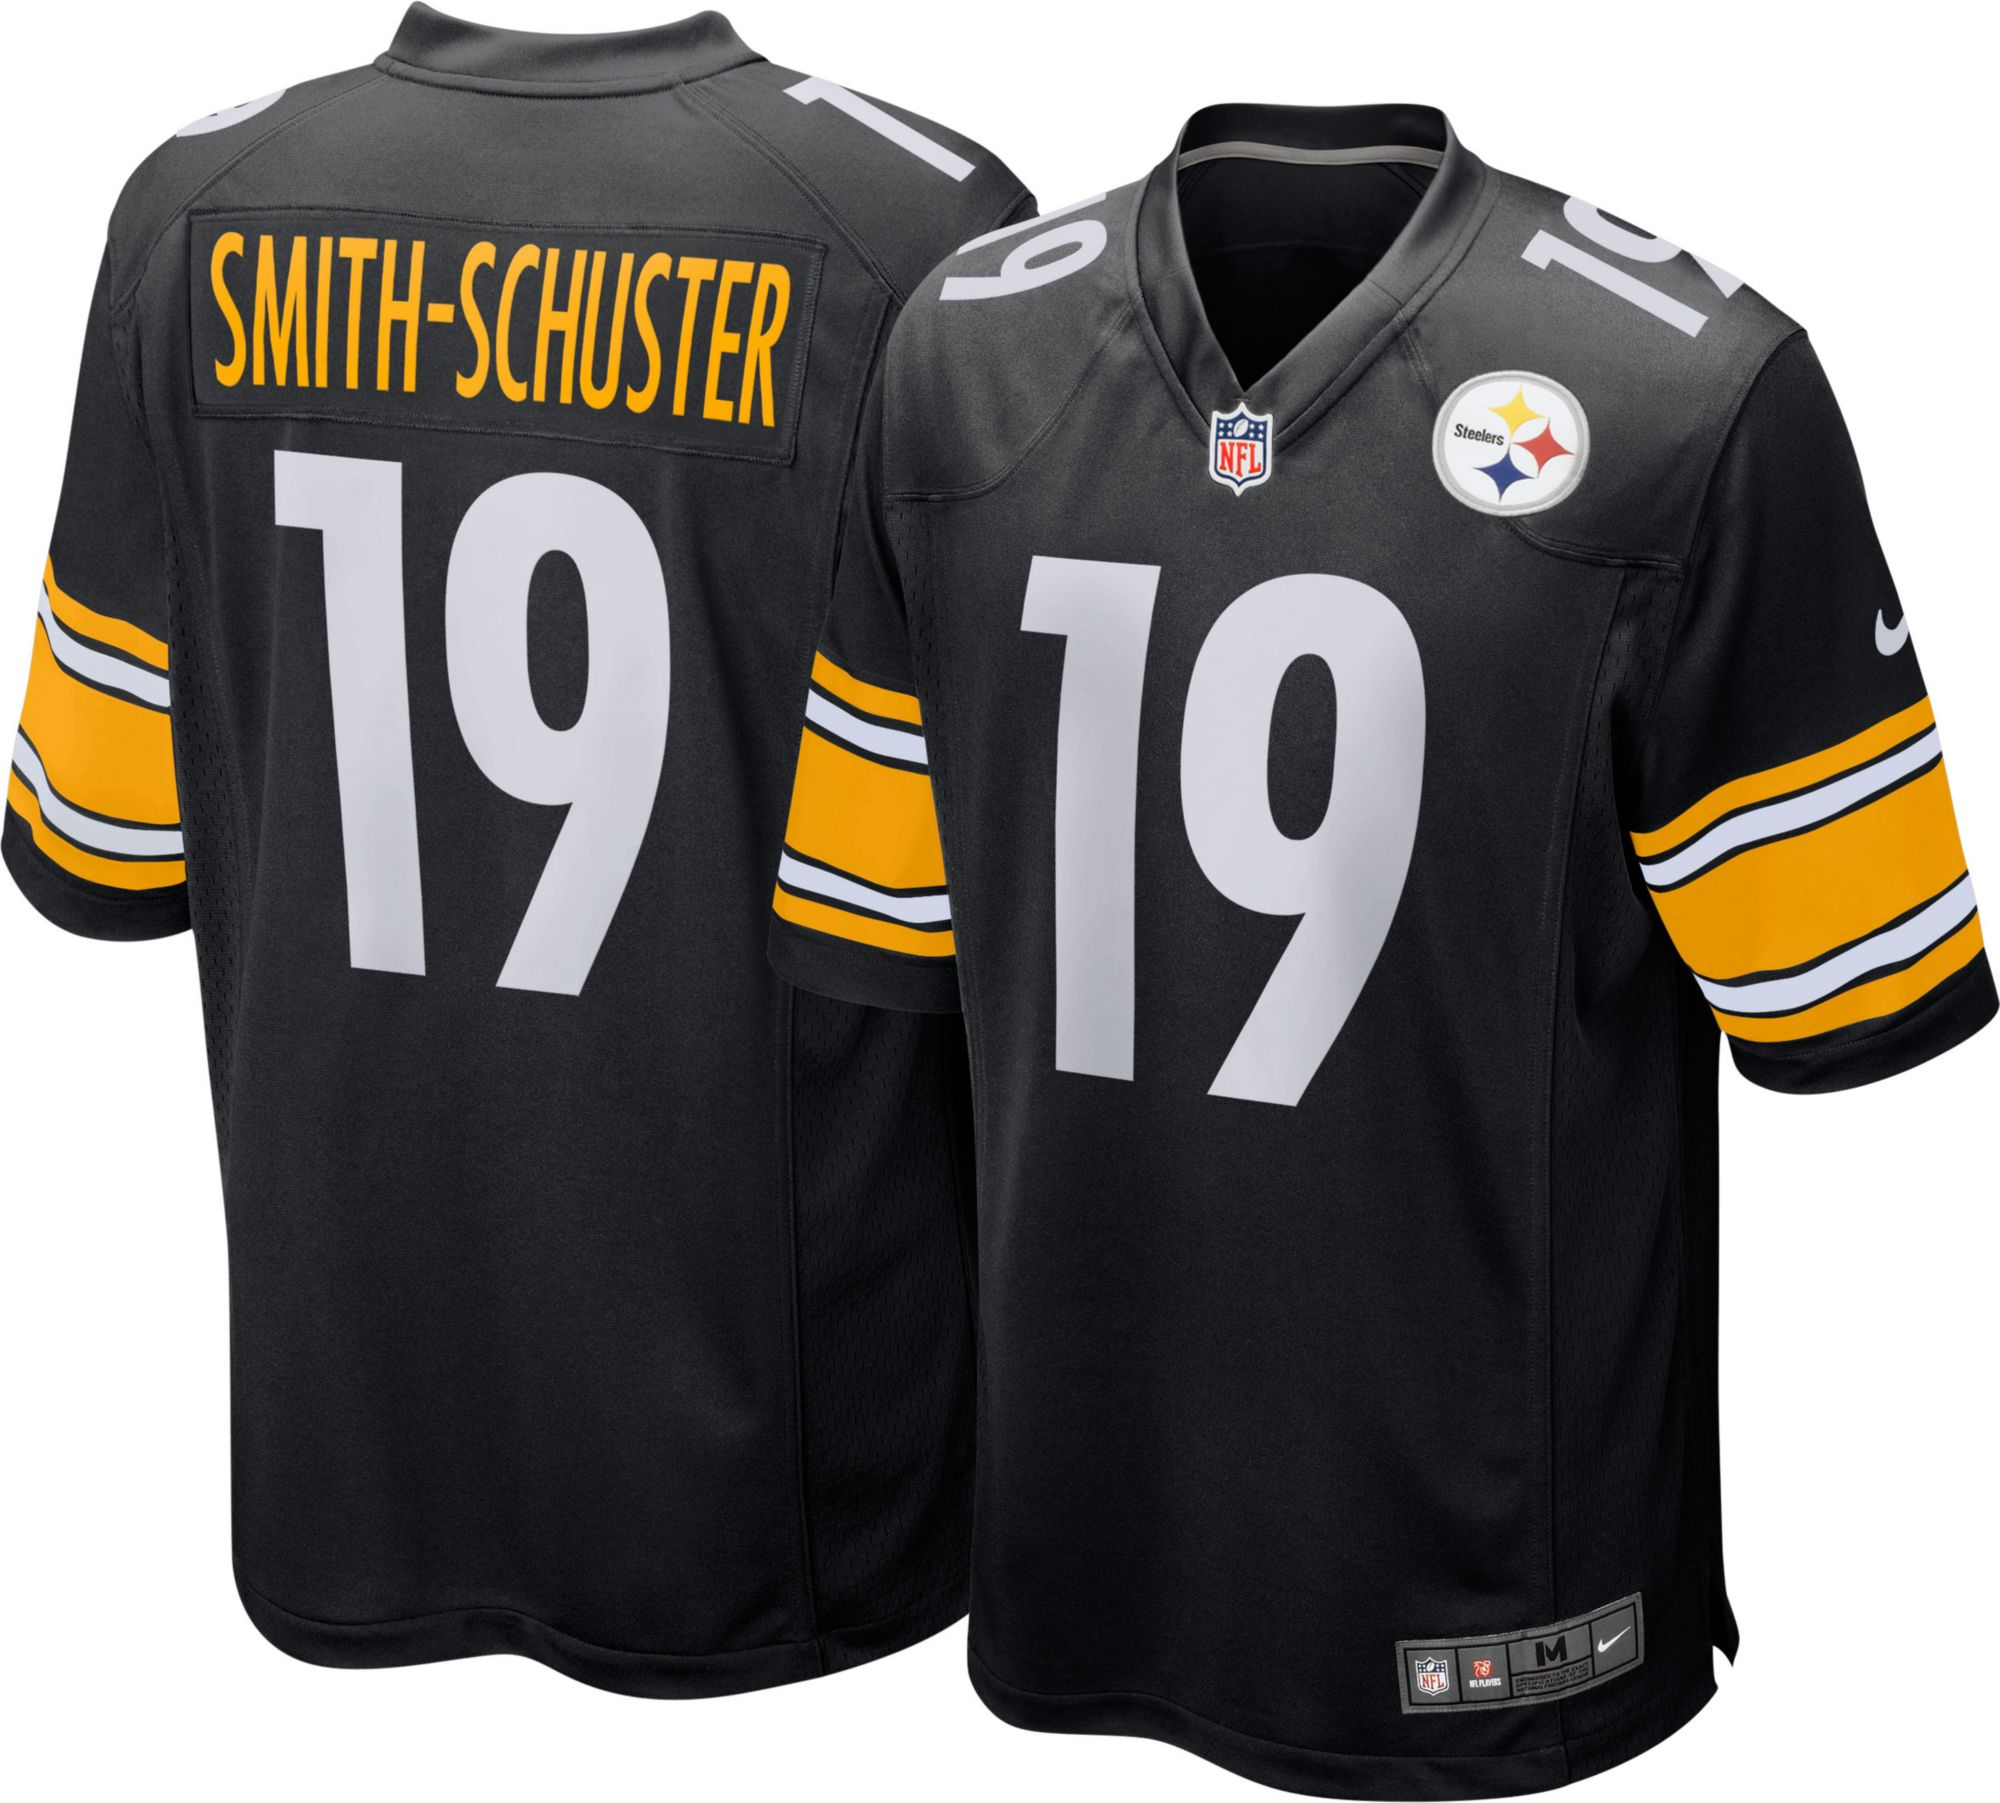 juju smith schuster color rush jersey